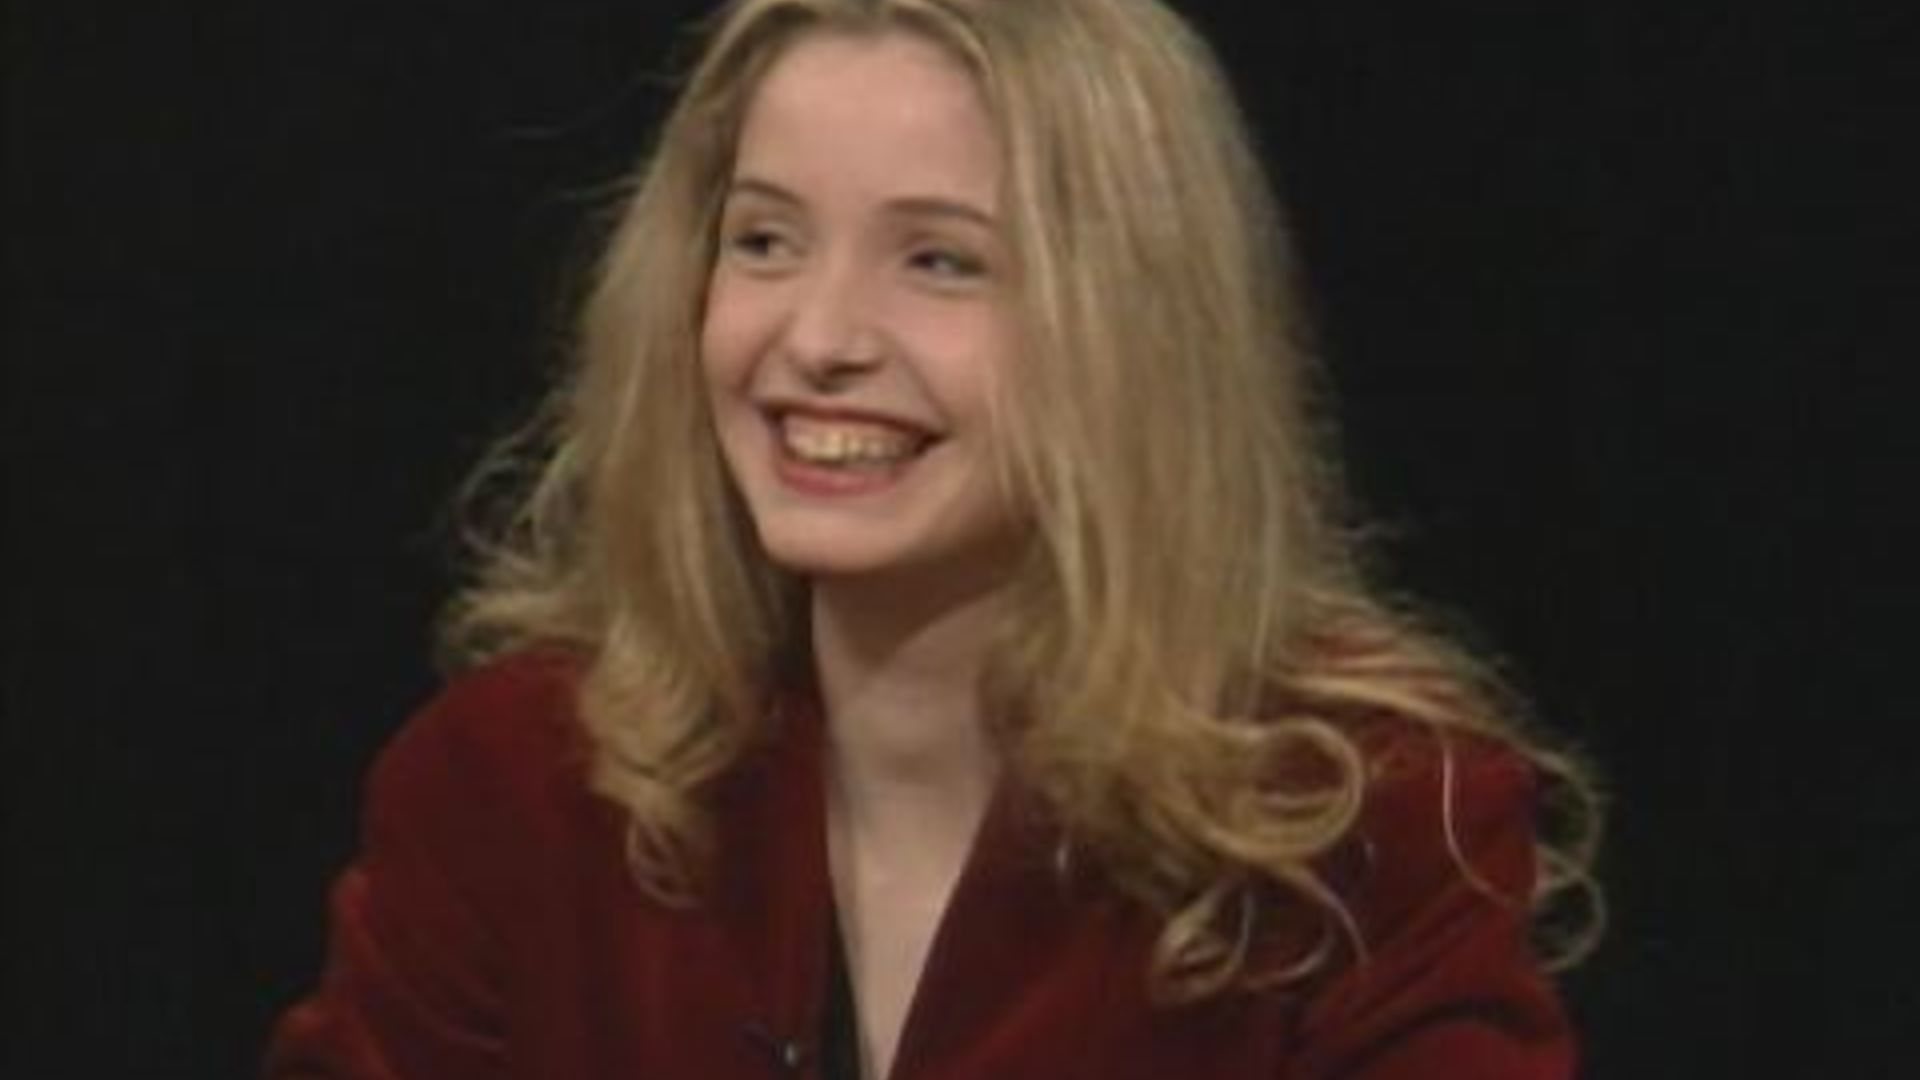 Discussion on this topic: Chiara Caselli, julie-delpy/